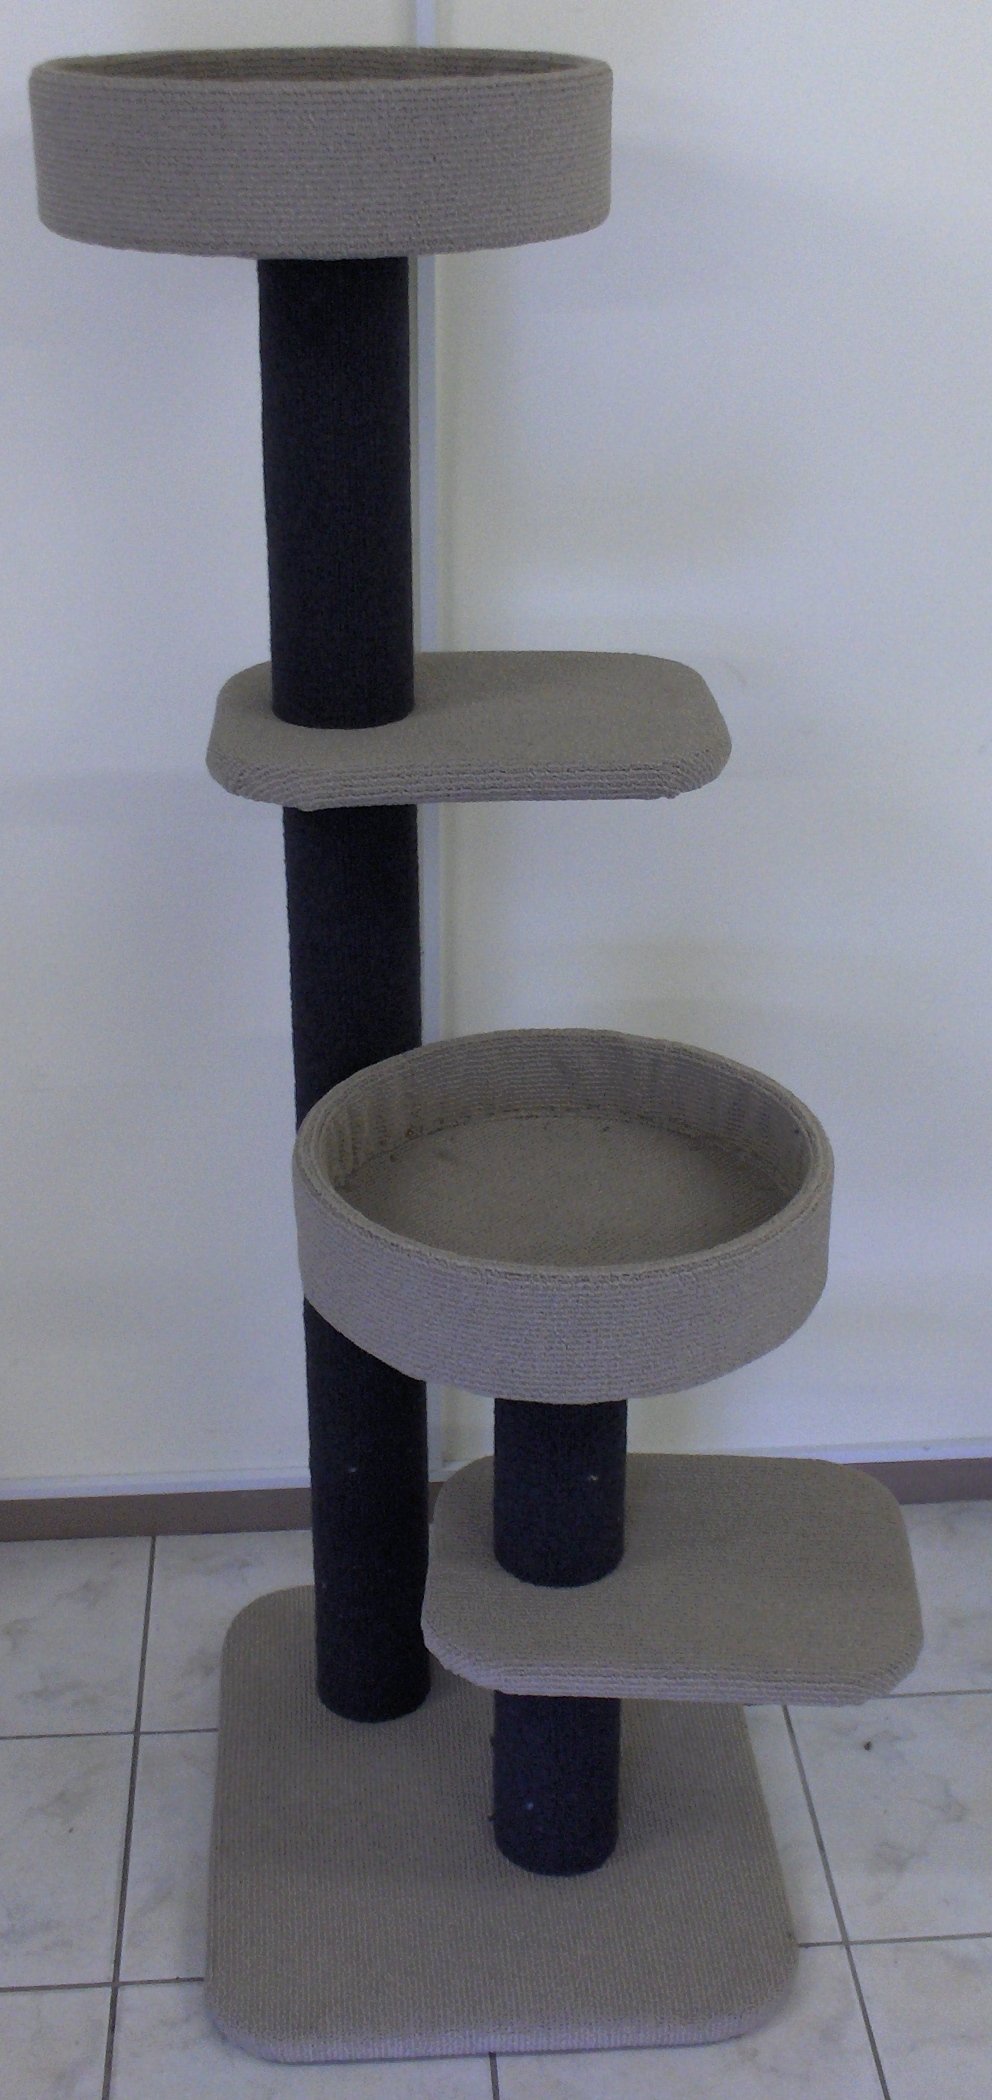 2 POLES WITH PLATFORM AND BASKET B:60x50 H:135